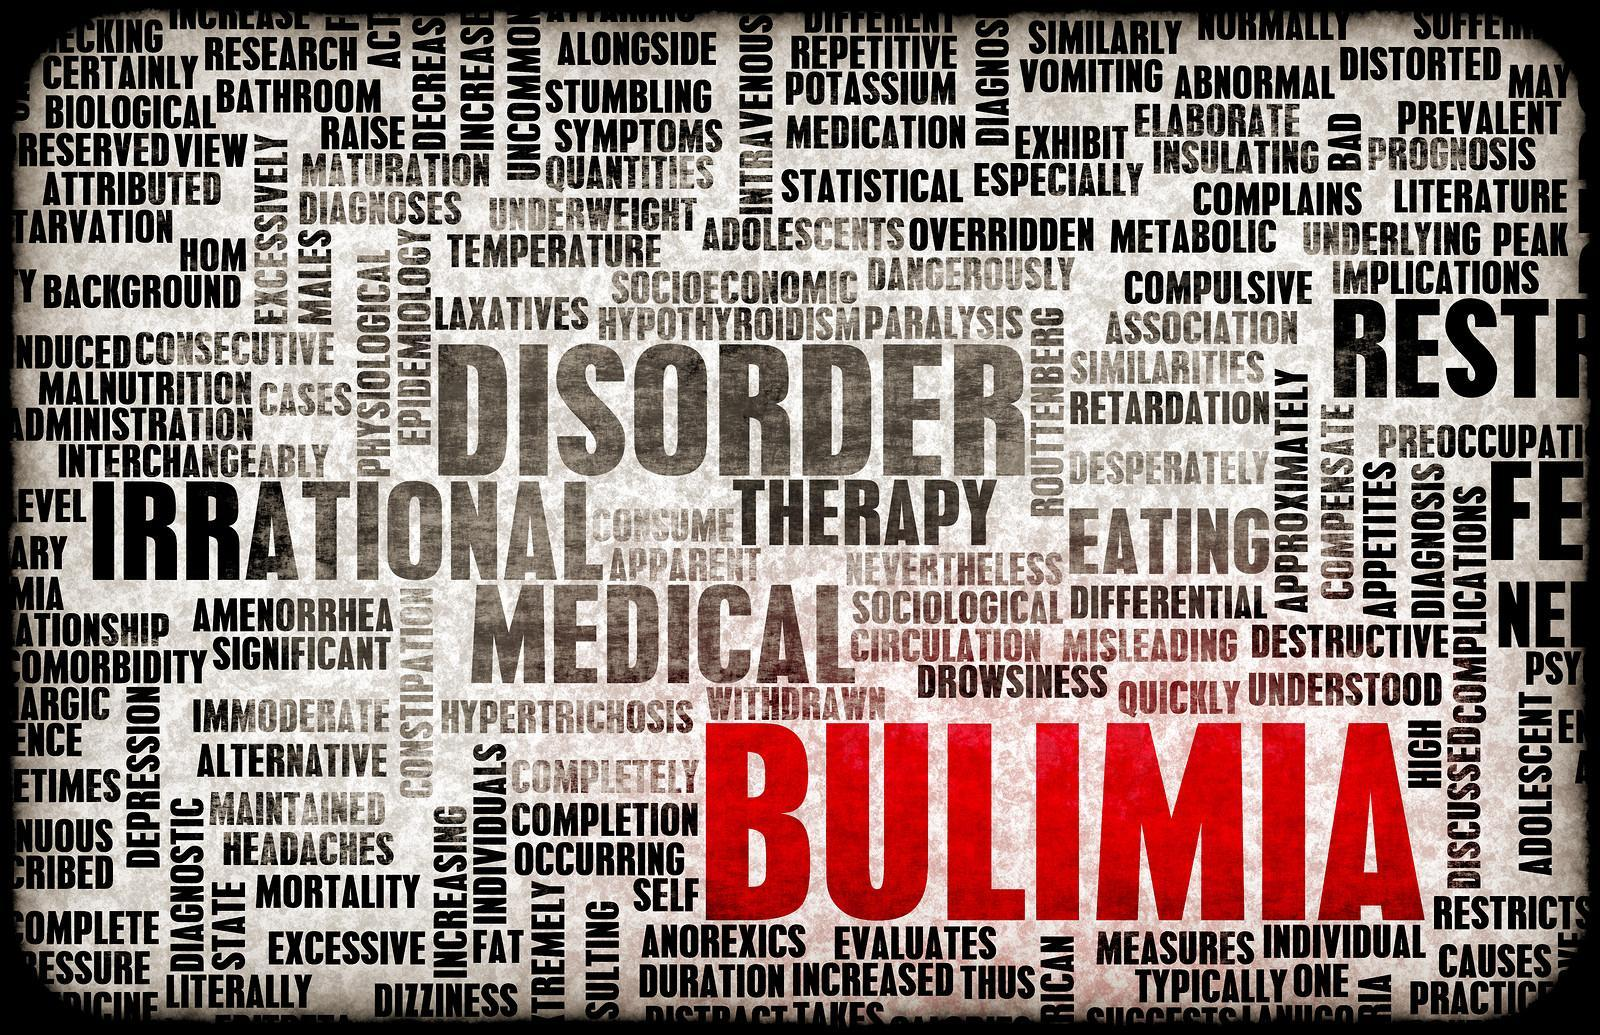 bulimia nervosa Classification bulimia nervosa is a disorder characterized by binge eating and purging, as well as excessive evaluation of one's self-worth in terms of body weight.